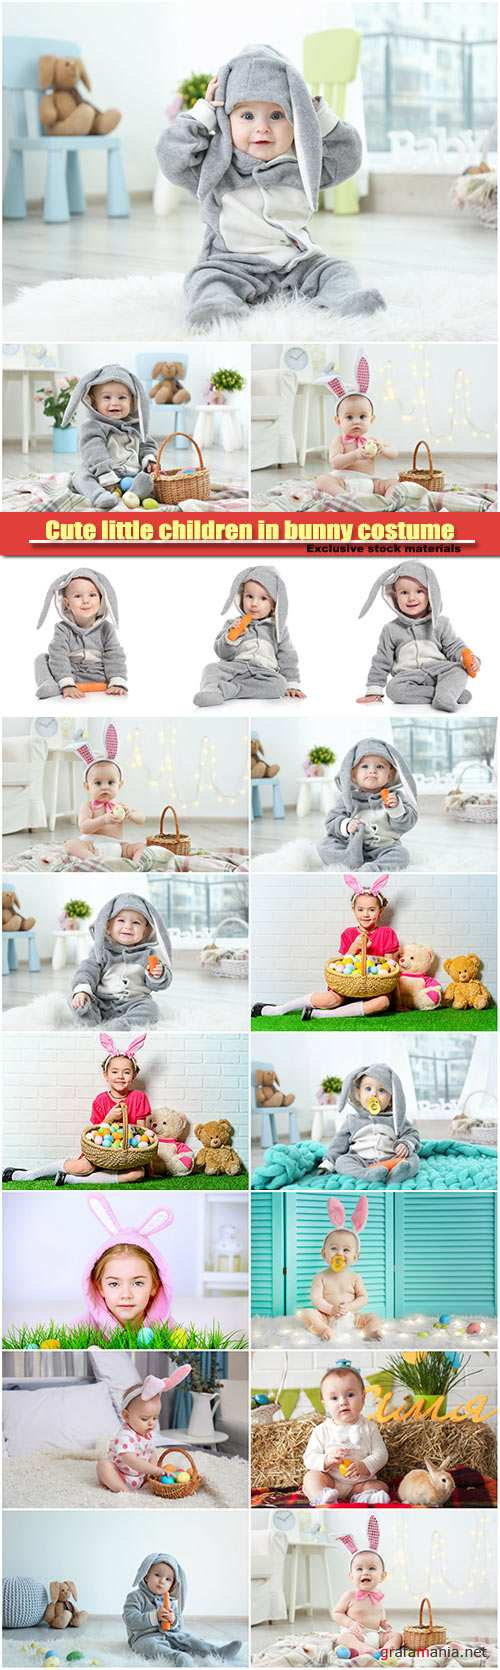 Cute little children in bunny costume, Easter holidays